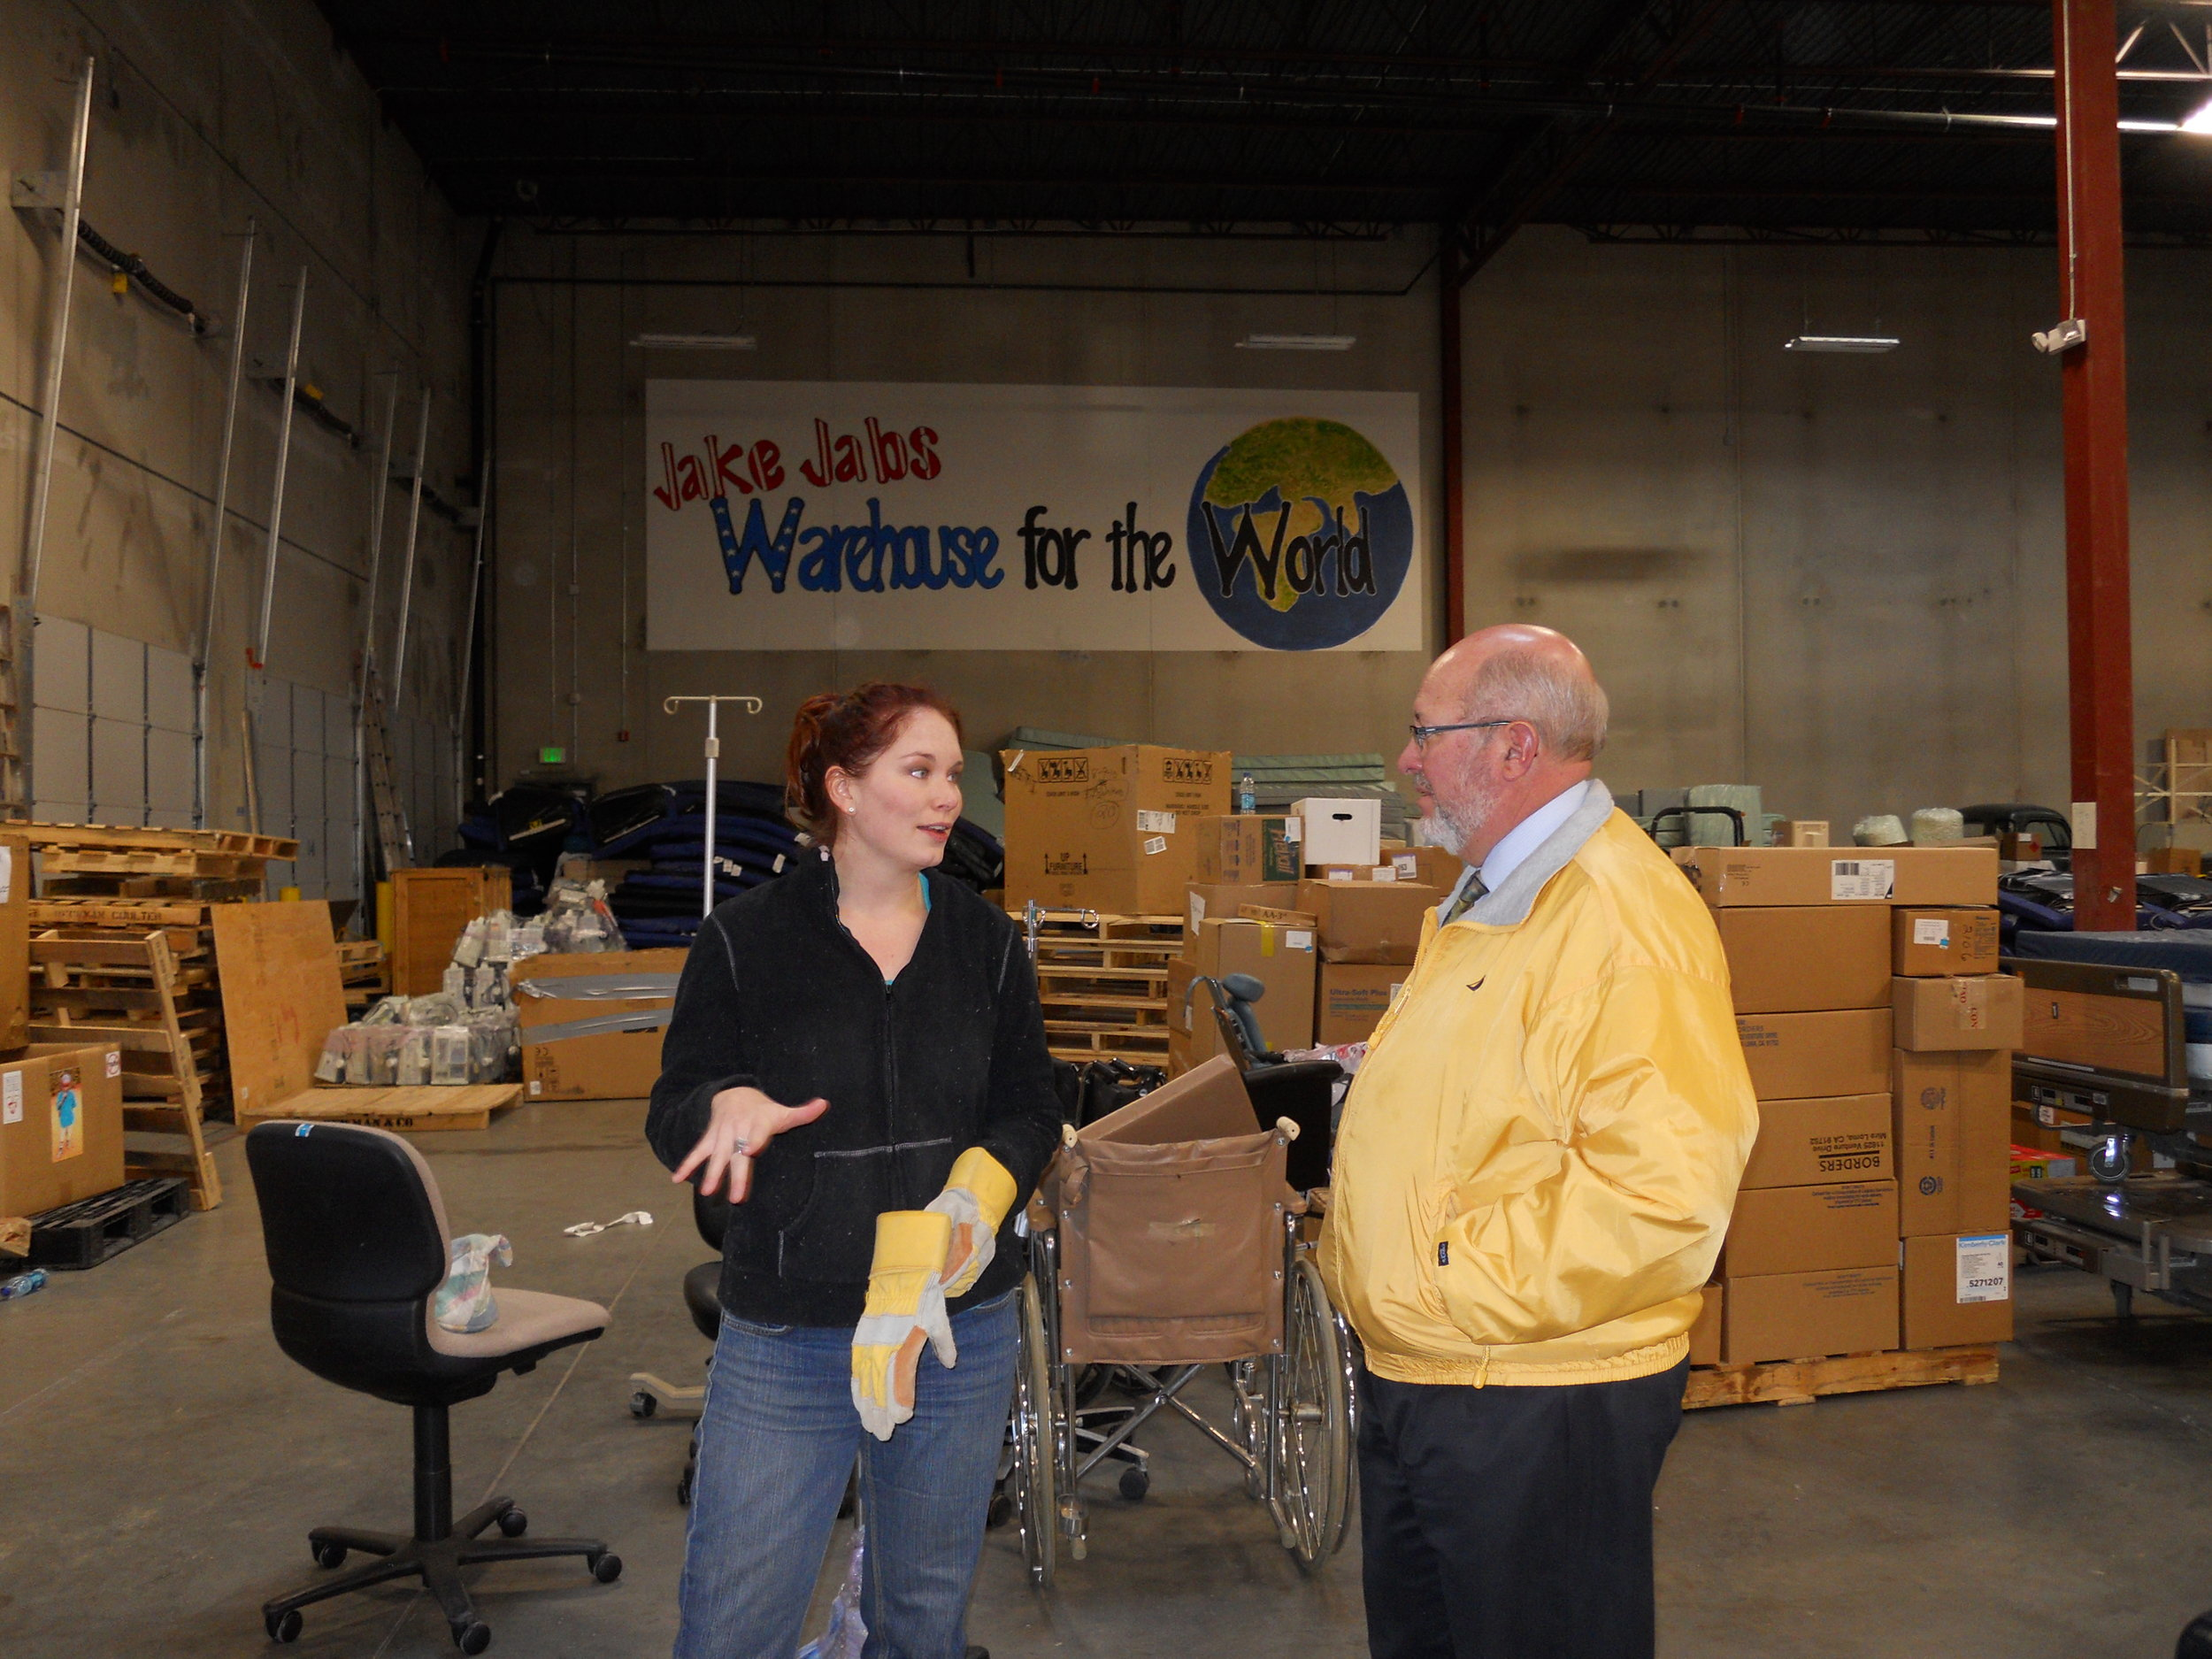 Allison Carey and Gary De Kler discussing Project C.U.R.E. operations